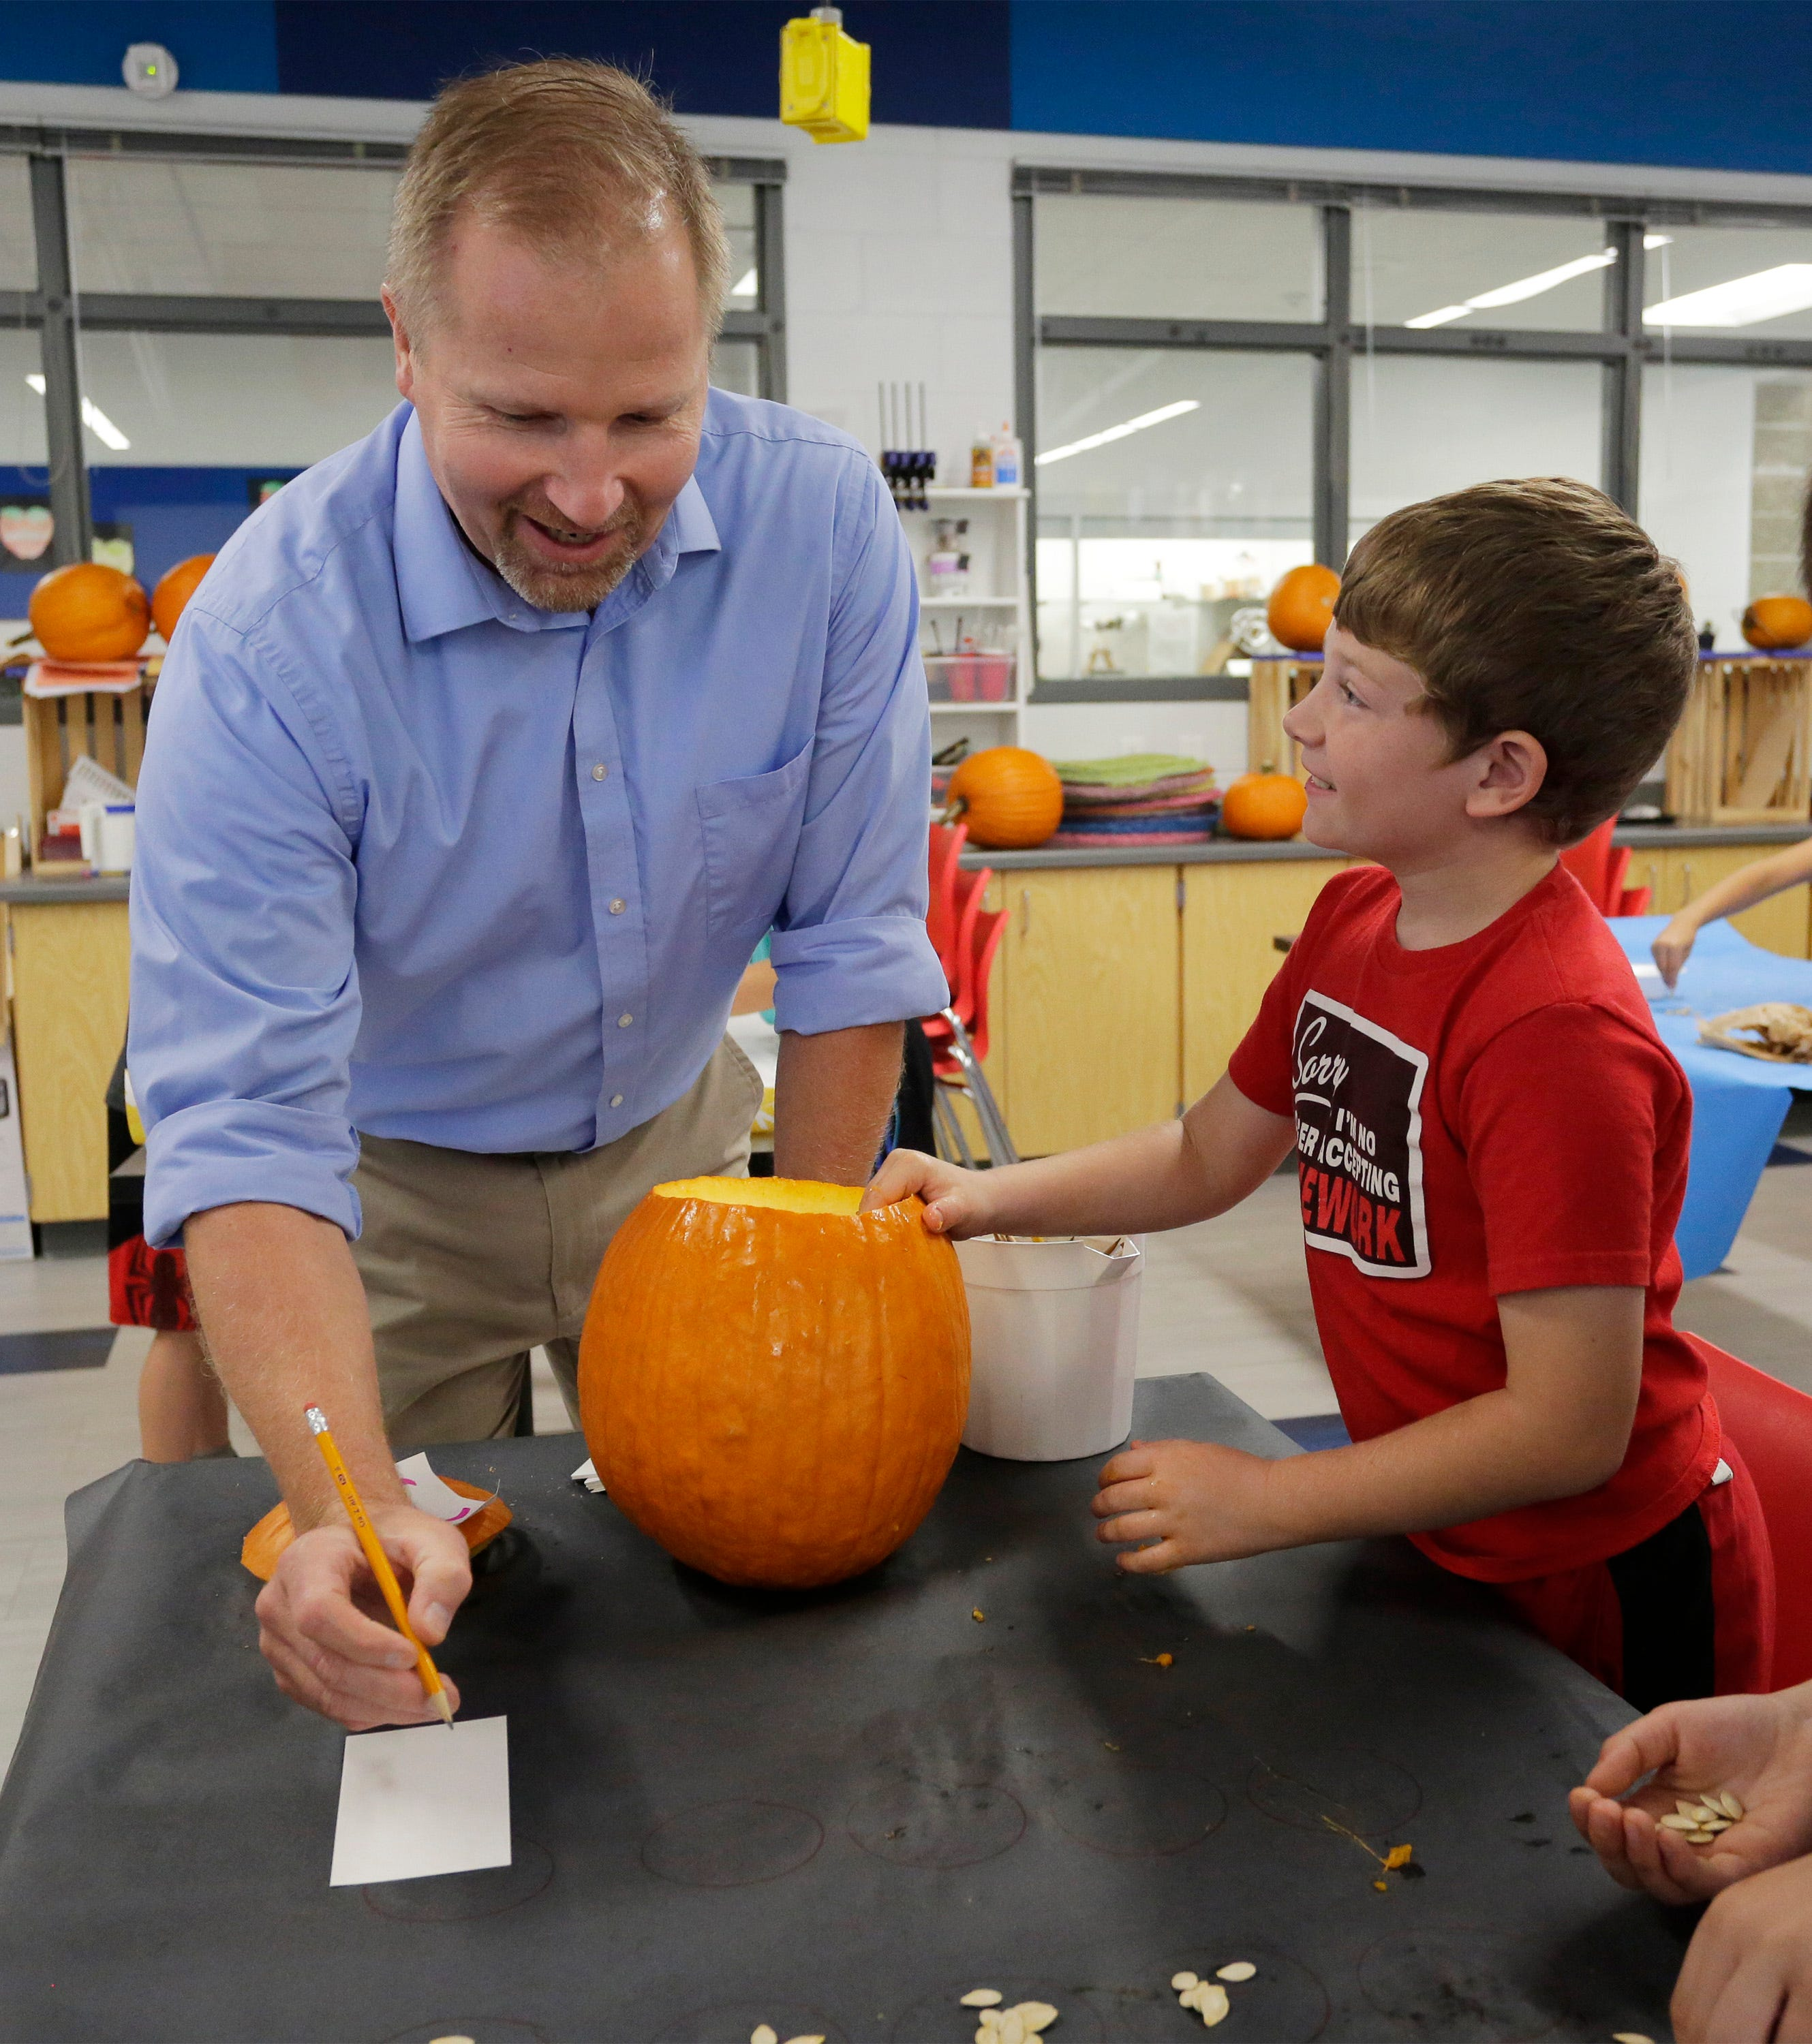 Oostburg Elementary science and social studies teacher Curt Bretall, left, explains a counting procedure for a pumpkin experiment to Jonathan Walvoord, Wednesday, Sept. 25, 2019, in Oostburg. The experiment is based on a question on the ACT Aspire exam administered to ninth and 10th graders across Wisconsin.